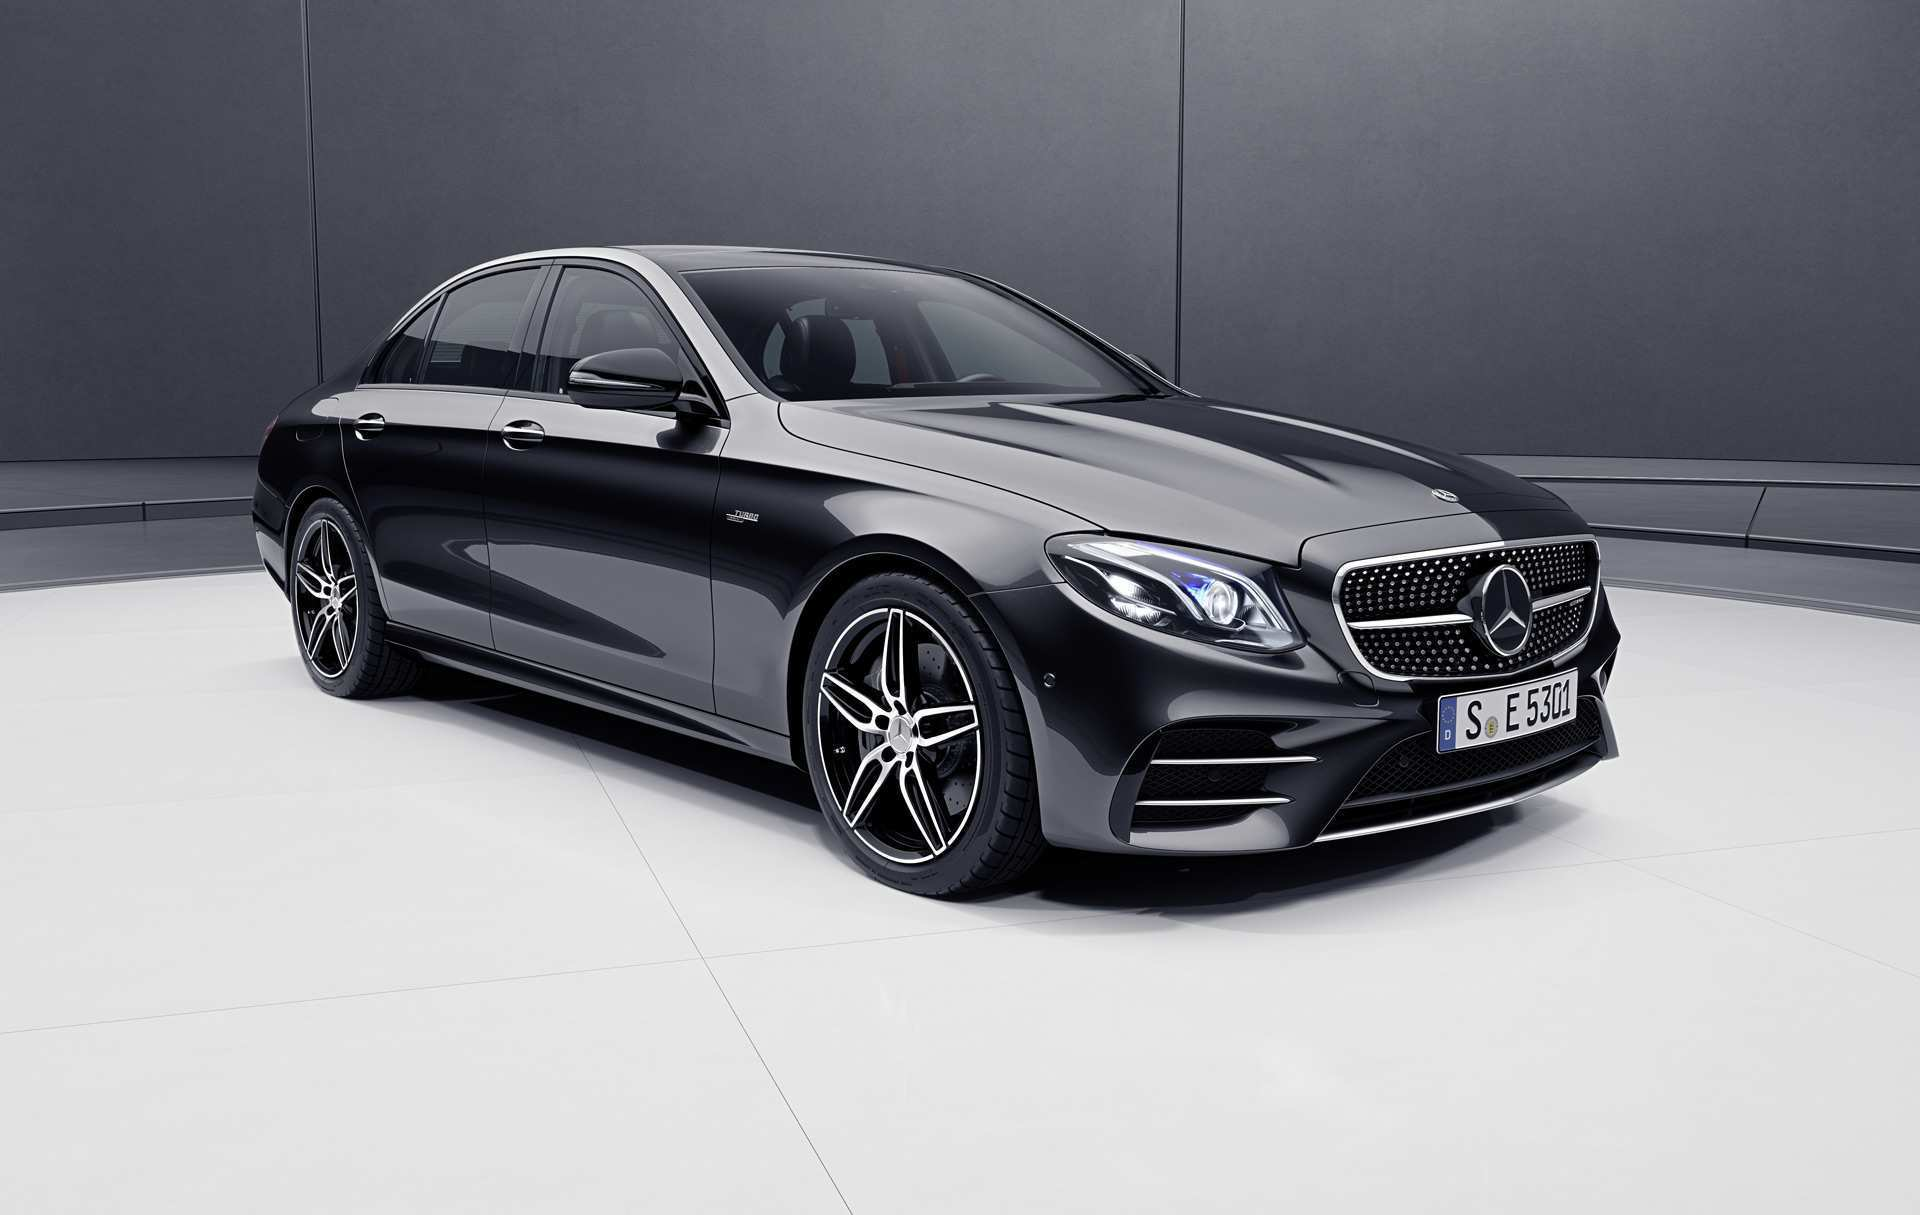 91 Gallery of New Mercedes Hybrid Cars 2019 Price And Release Date Overview for New Mercedes Hybrid Cars 2019 Price And Release Date